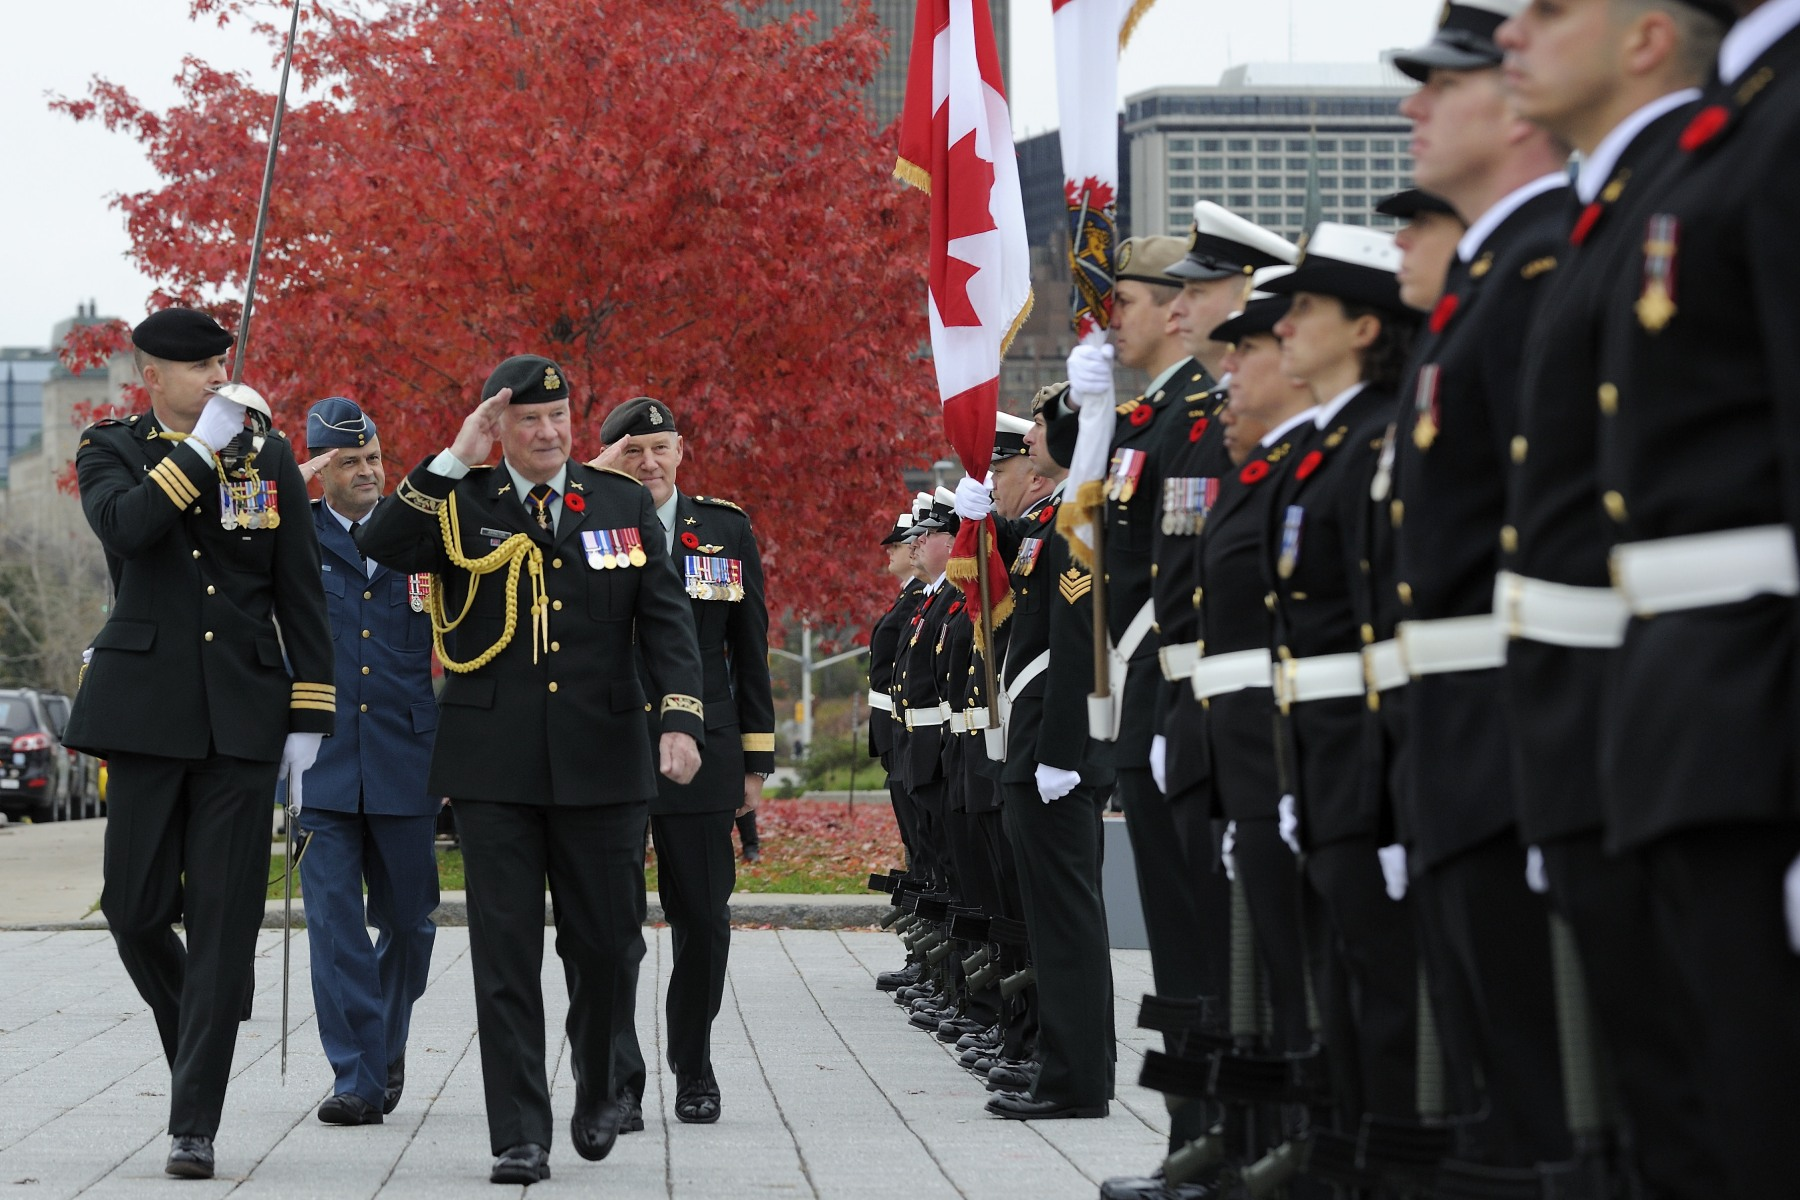 Upon his arrival, the Governor General received full military honours and conducted the inspection of a 50-member Canadian Forces guard of honour.